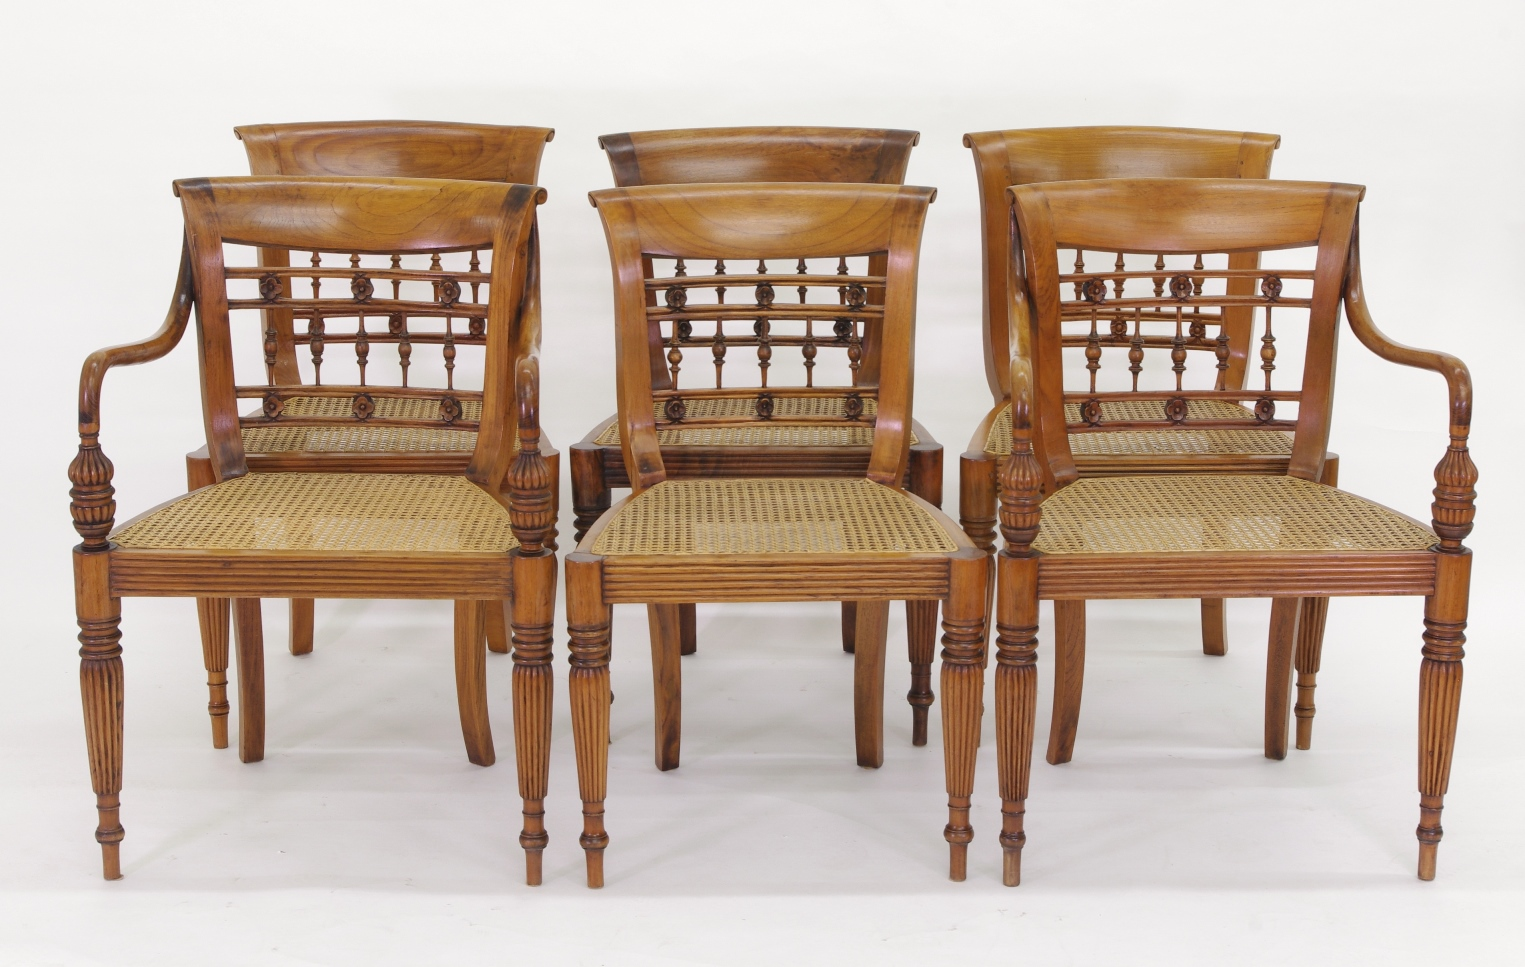 Set of Six British Colonial Dining Chairs, c. 1830